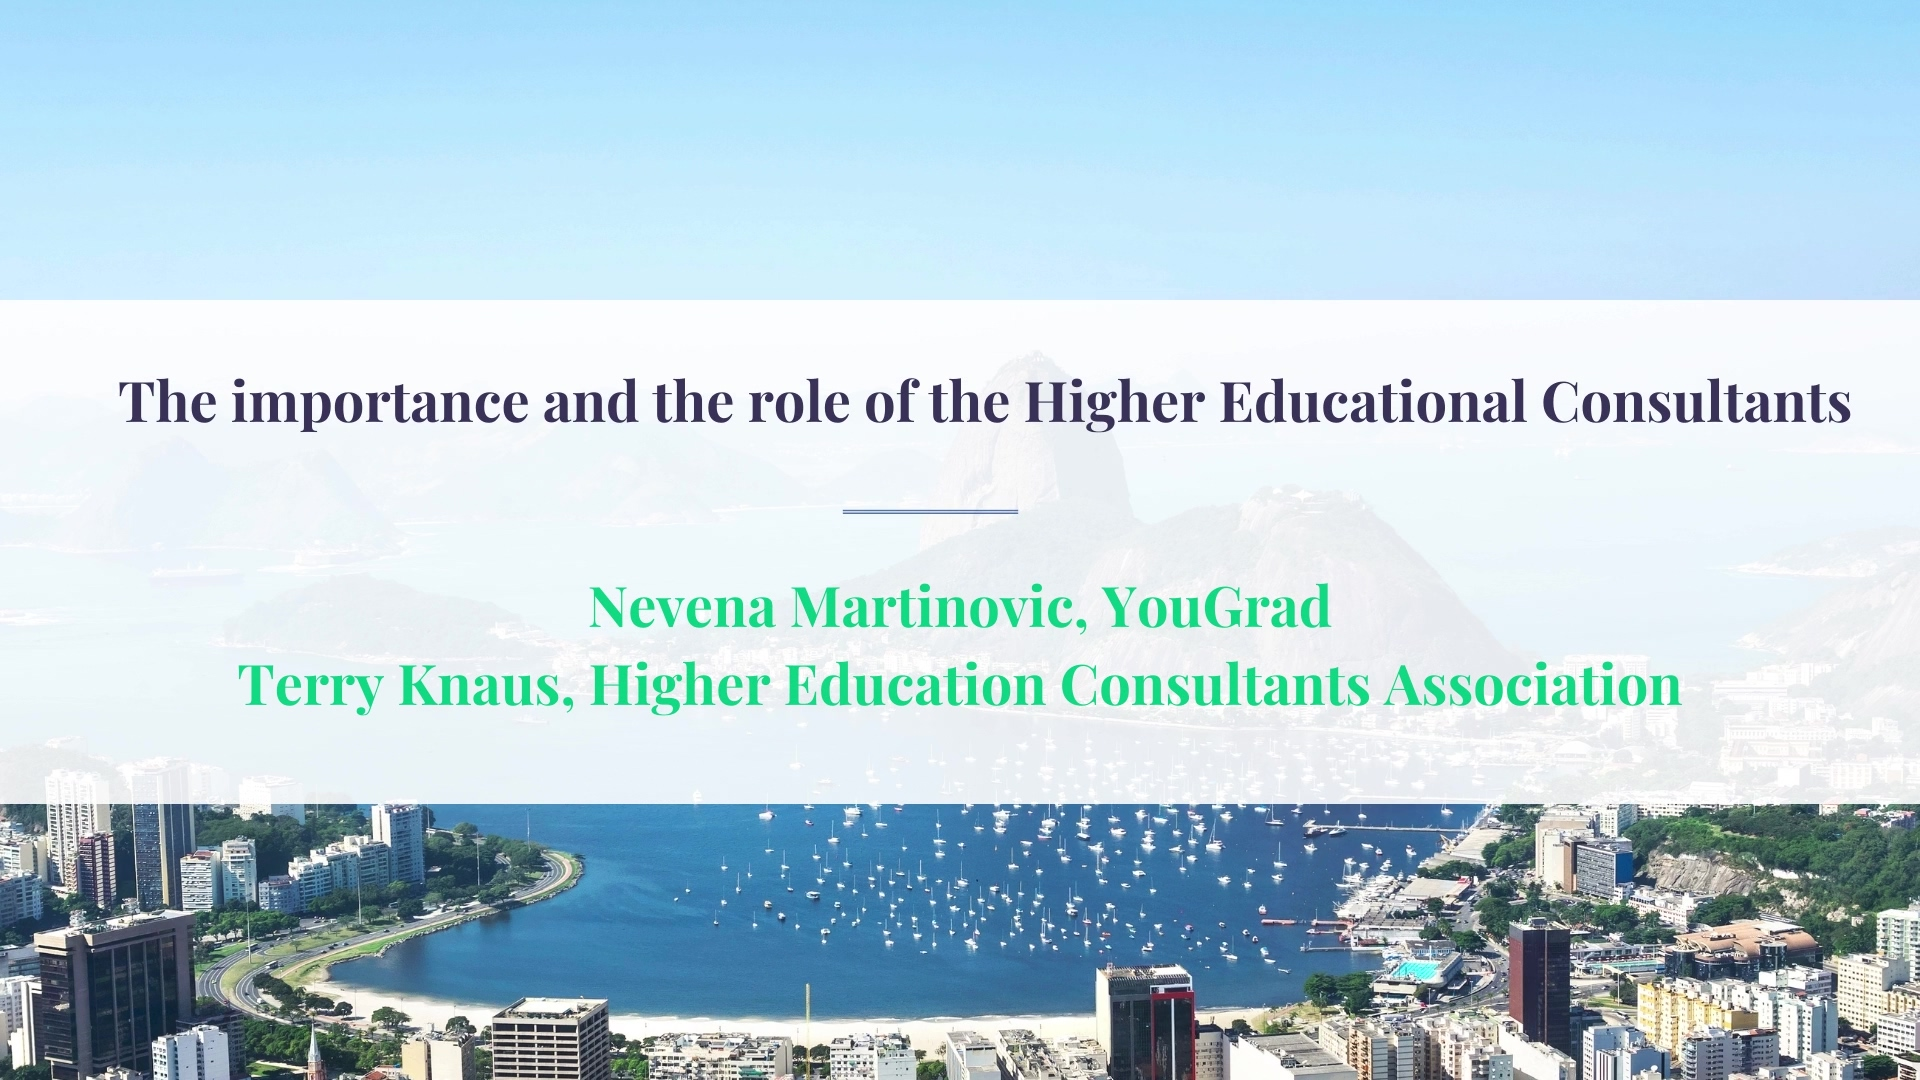 ECIE Americas The importance and the role of the Higher Educational Consultants